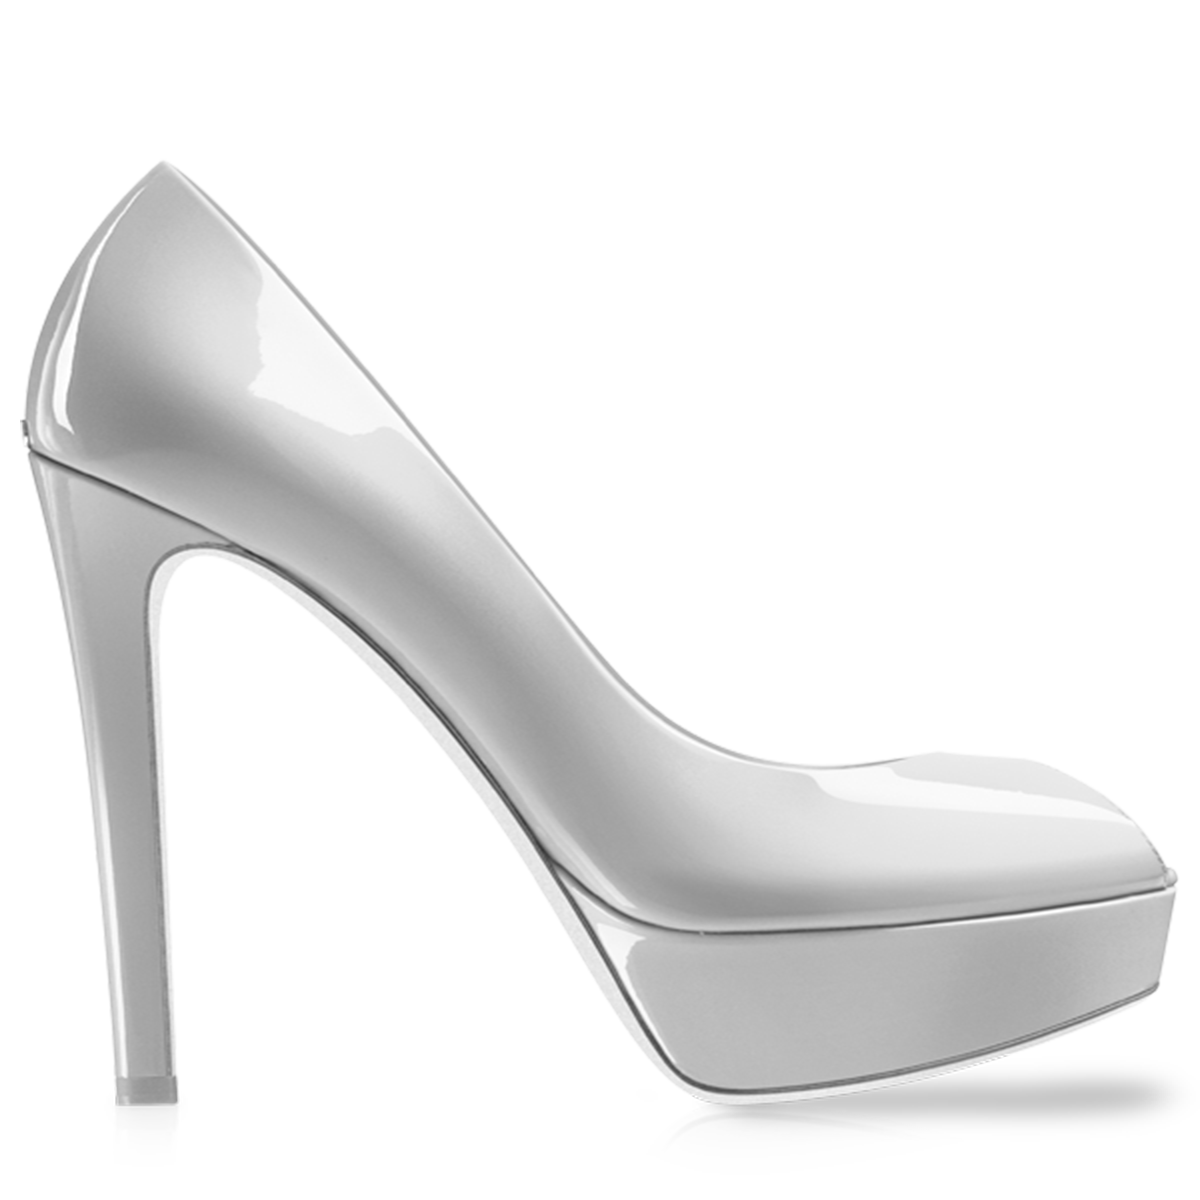 Wedding shoes png. Women images free download